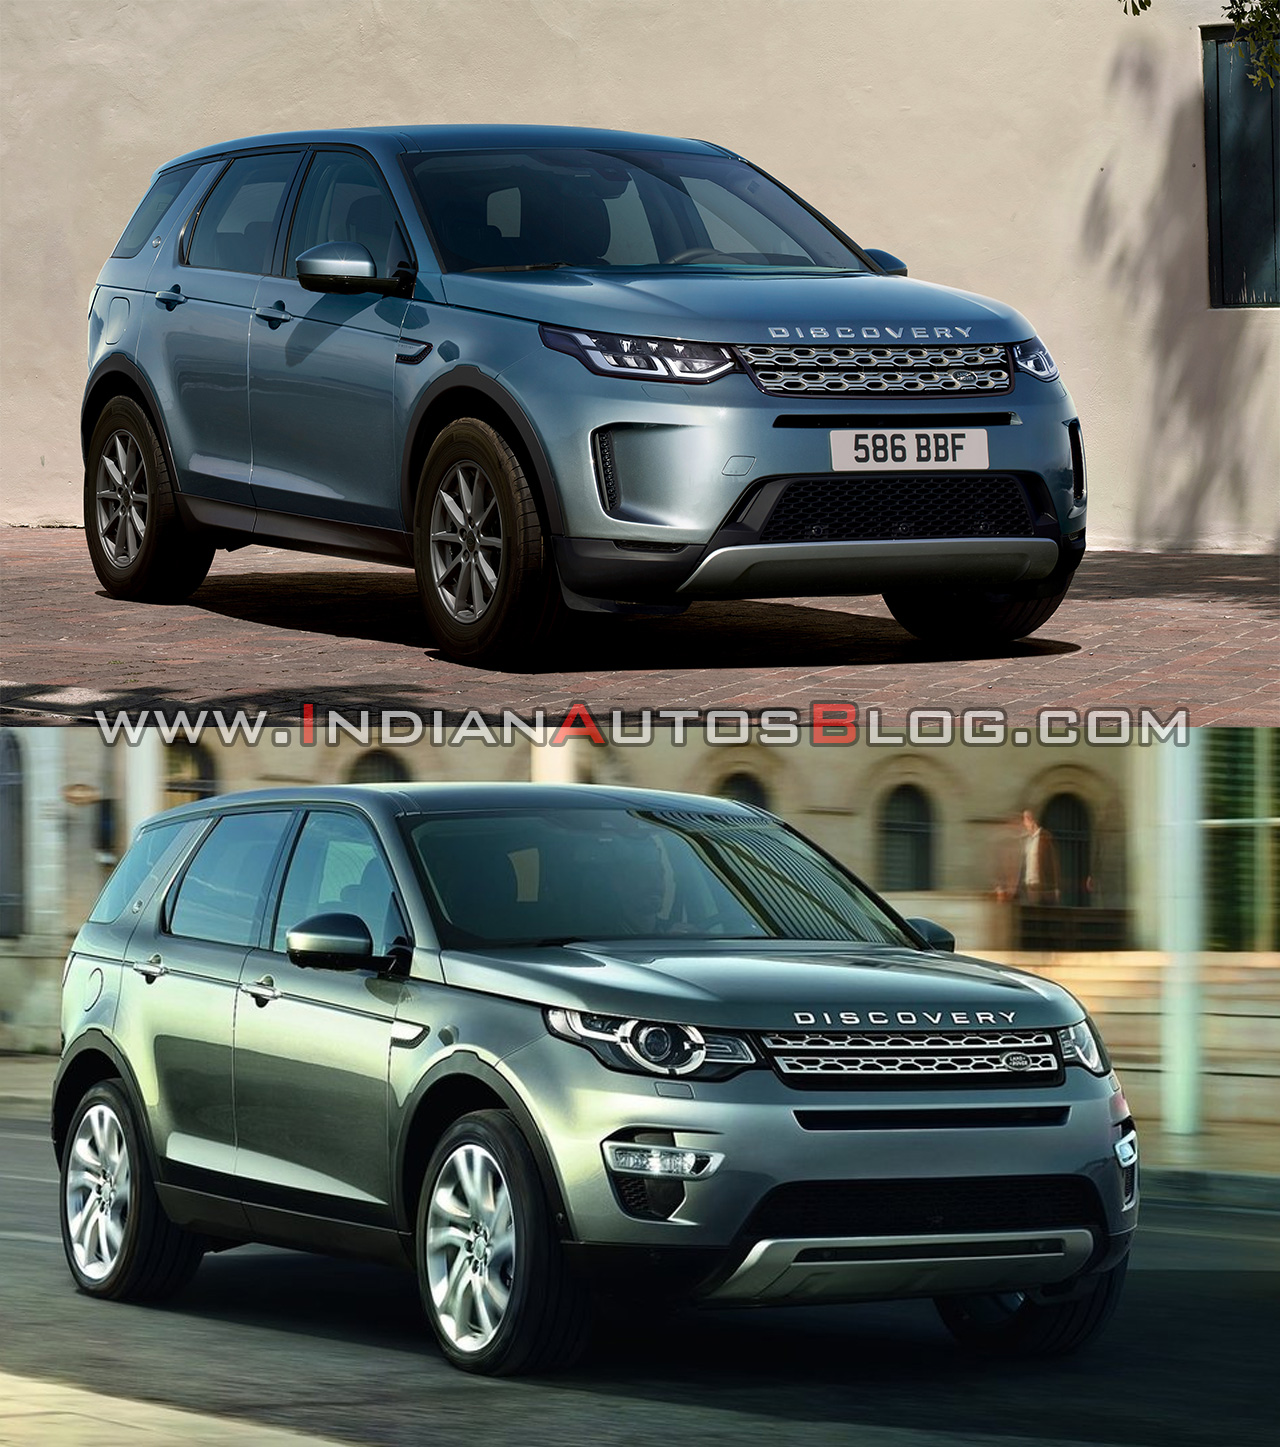 2019 land rover discovery sport vs 2015 land rover. Black Bedroom Furniture Sets. Home Design Ideas